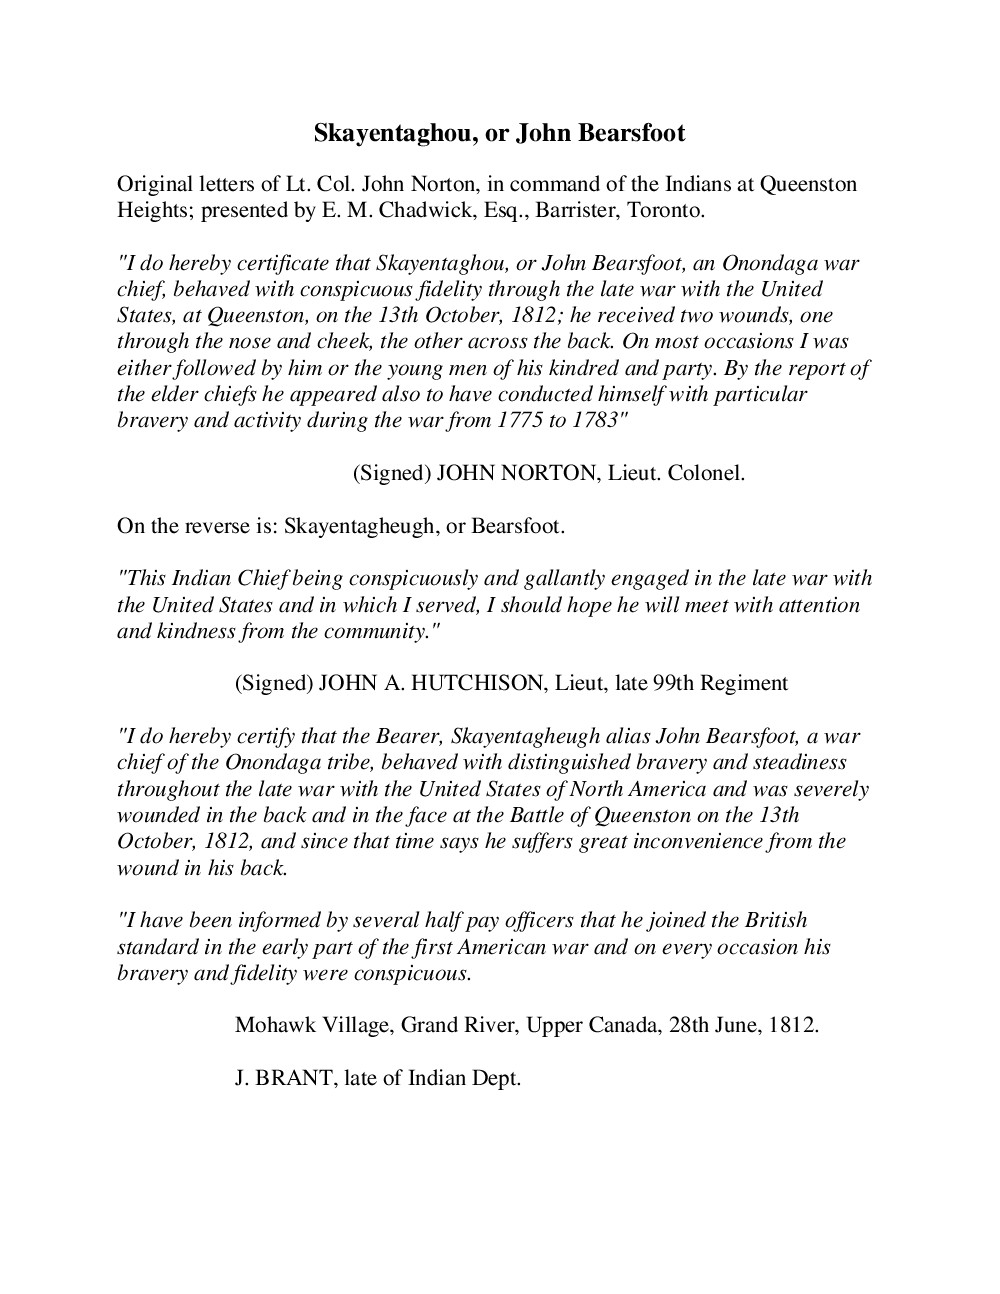 Skayentaghou (John Bearsfoot) - Letter of Conspicuous Fidelity issued by John Norton